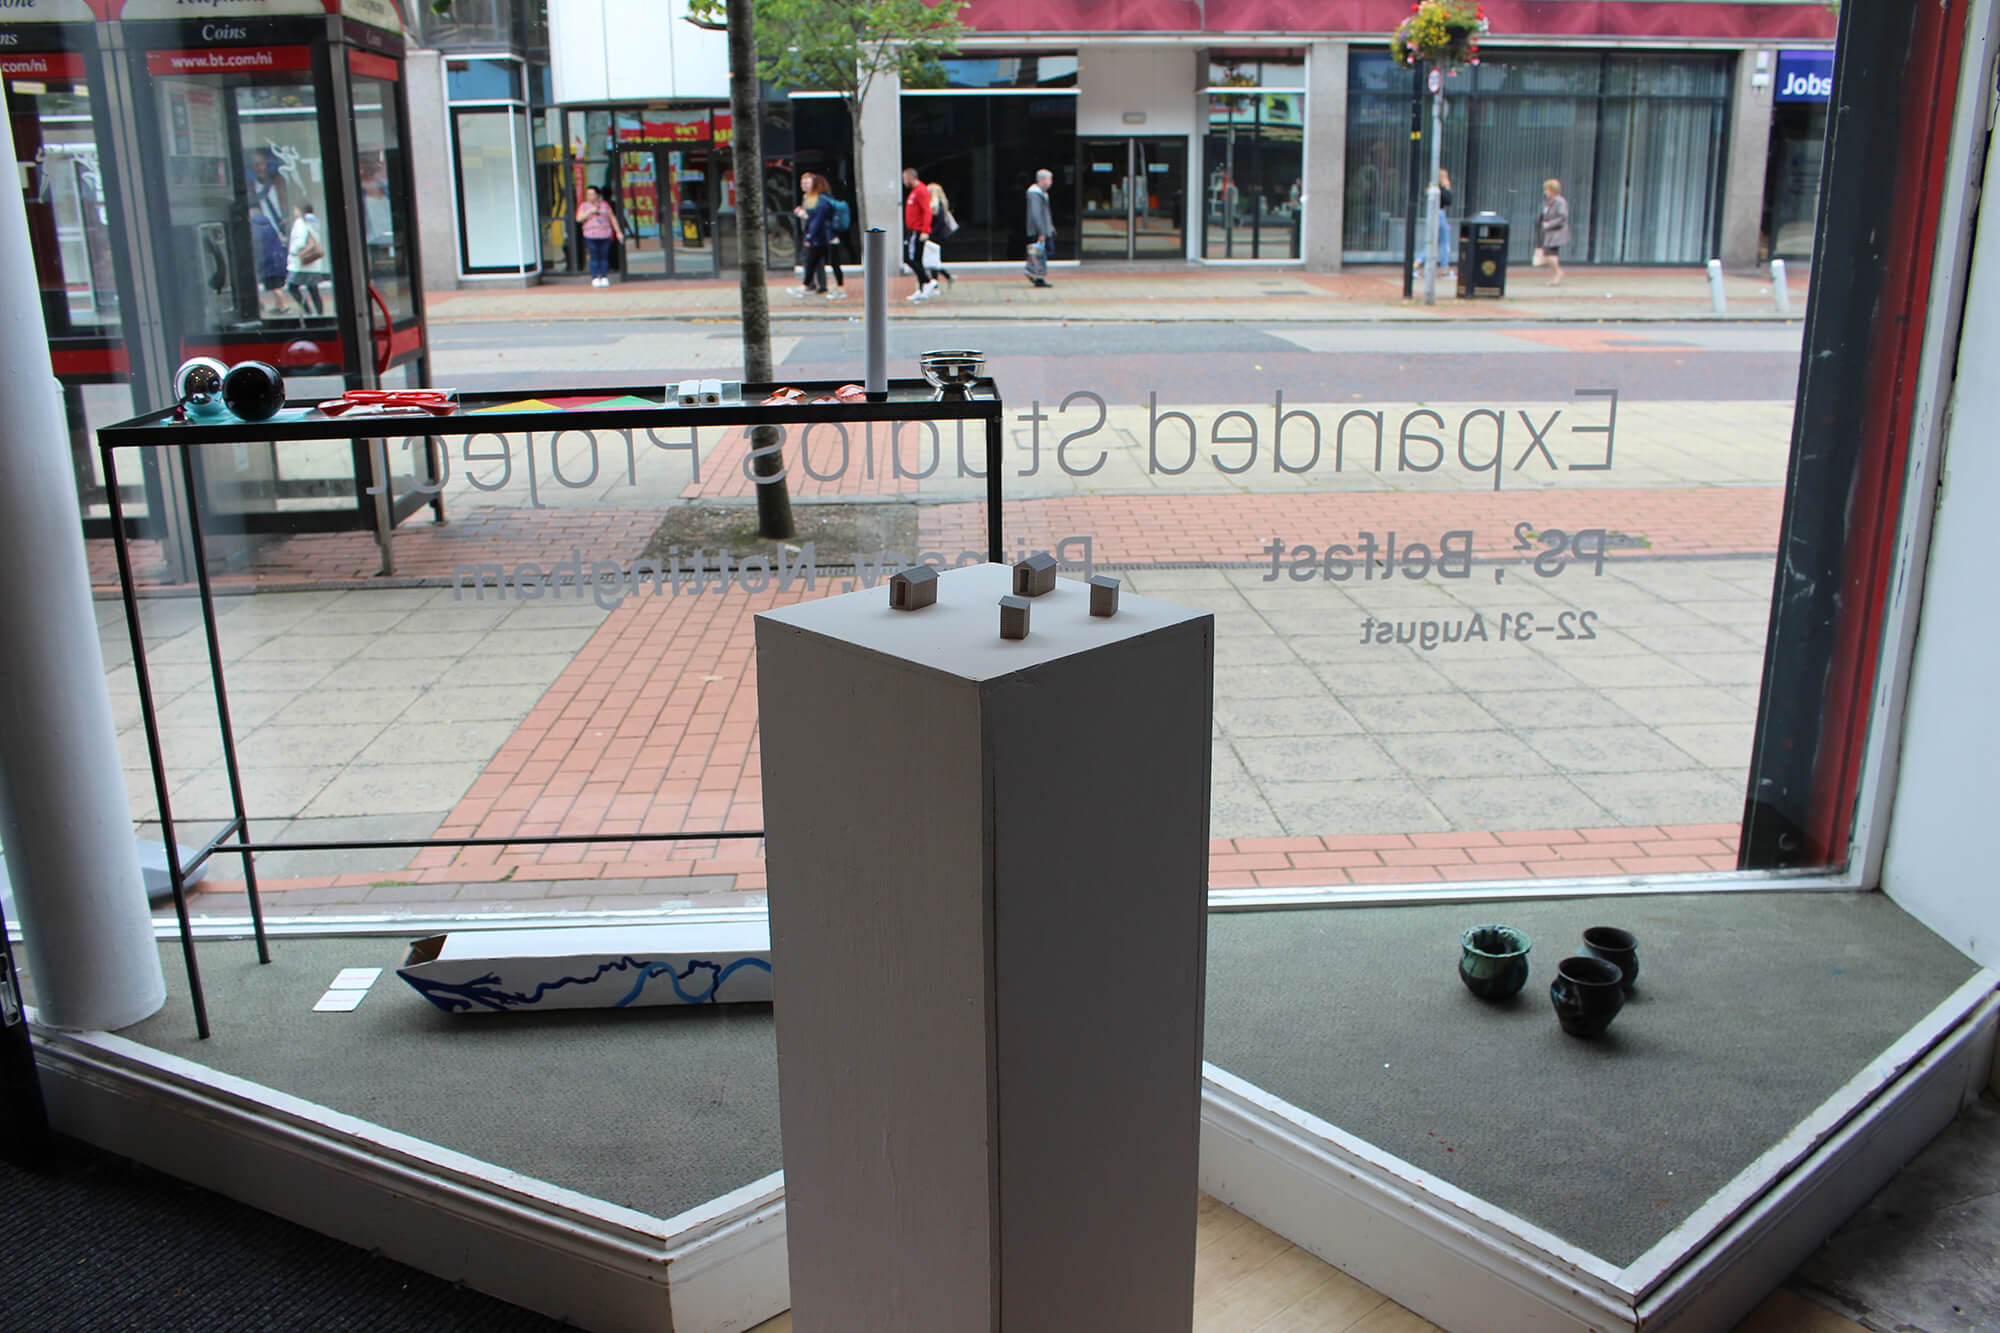 small-scale models of S.H.E.D configurations on a plinth in a gallery window